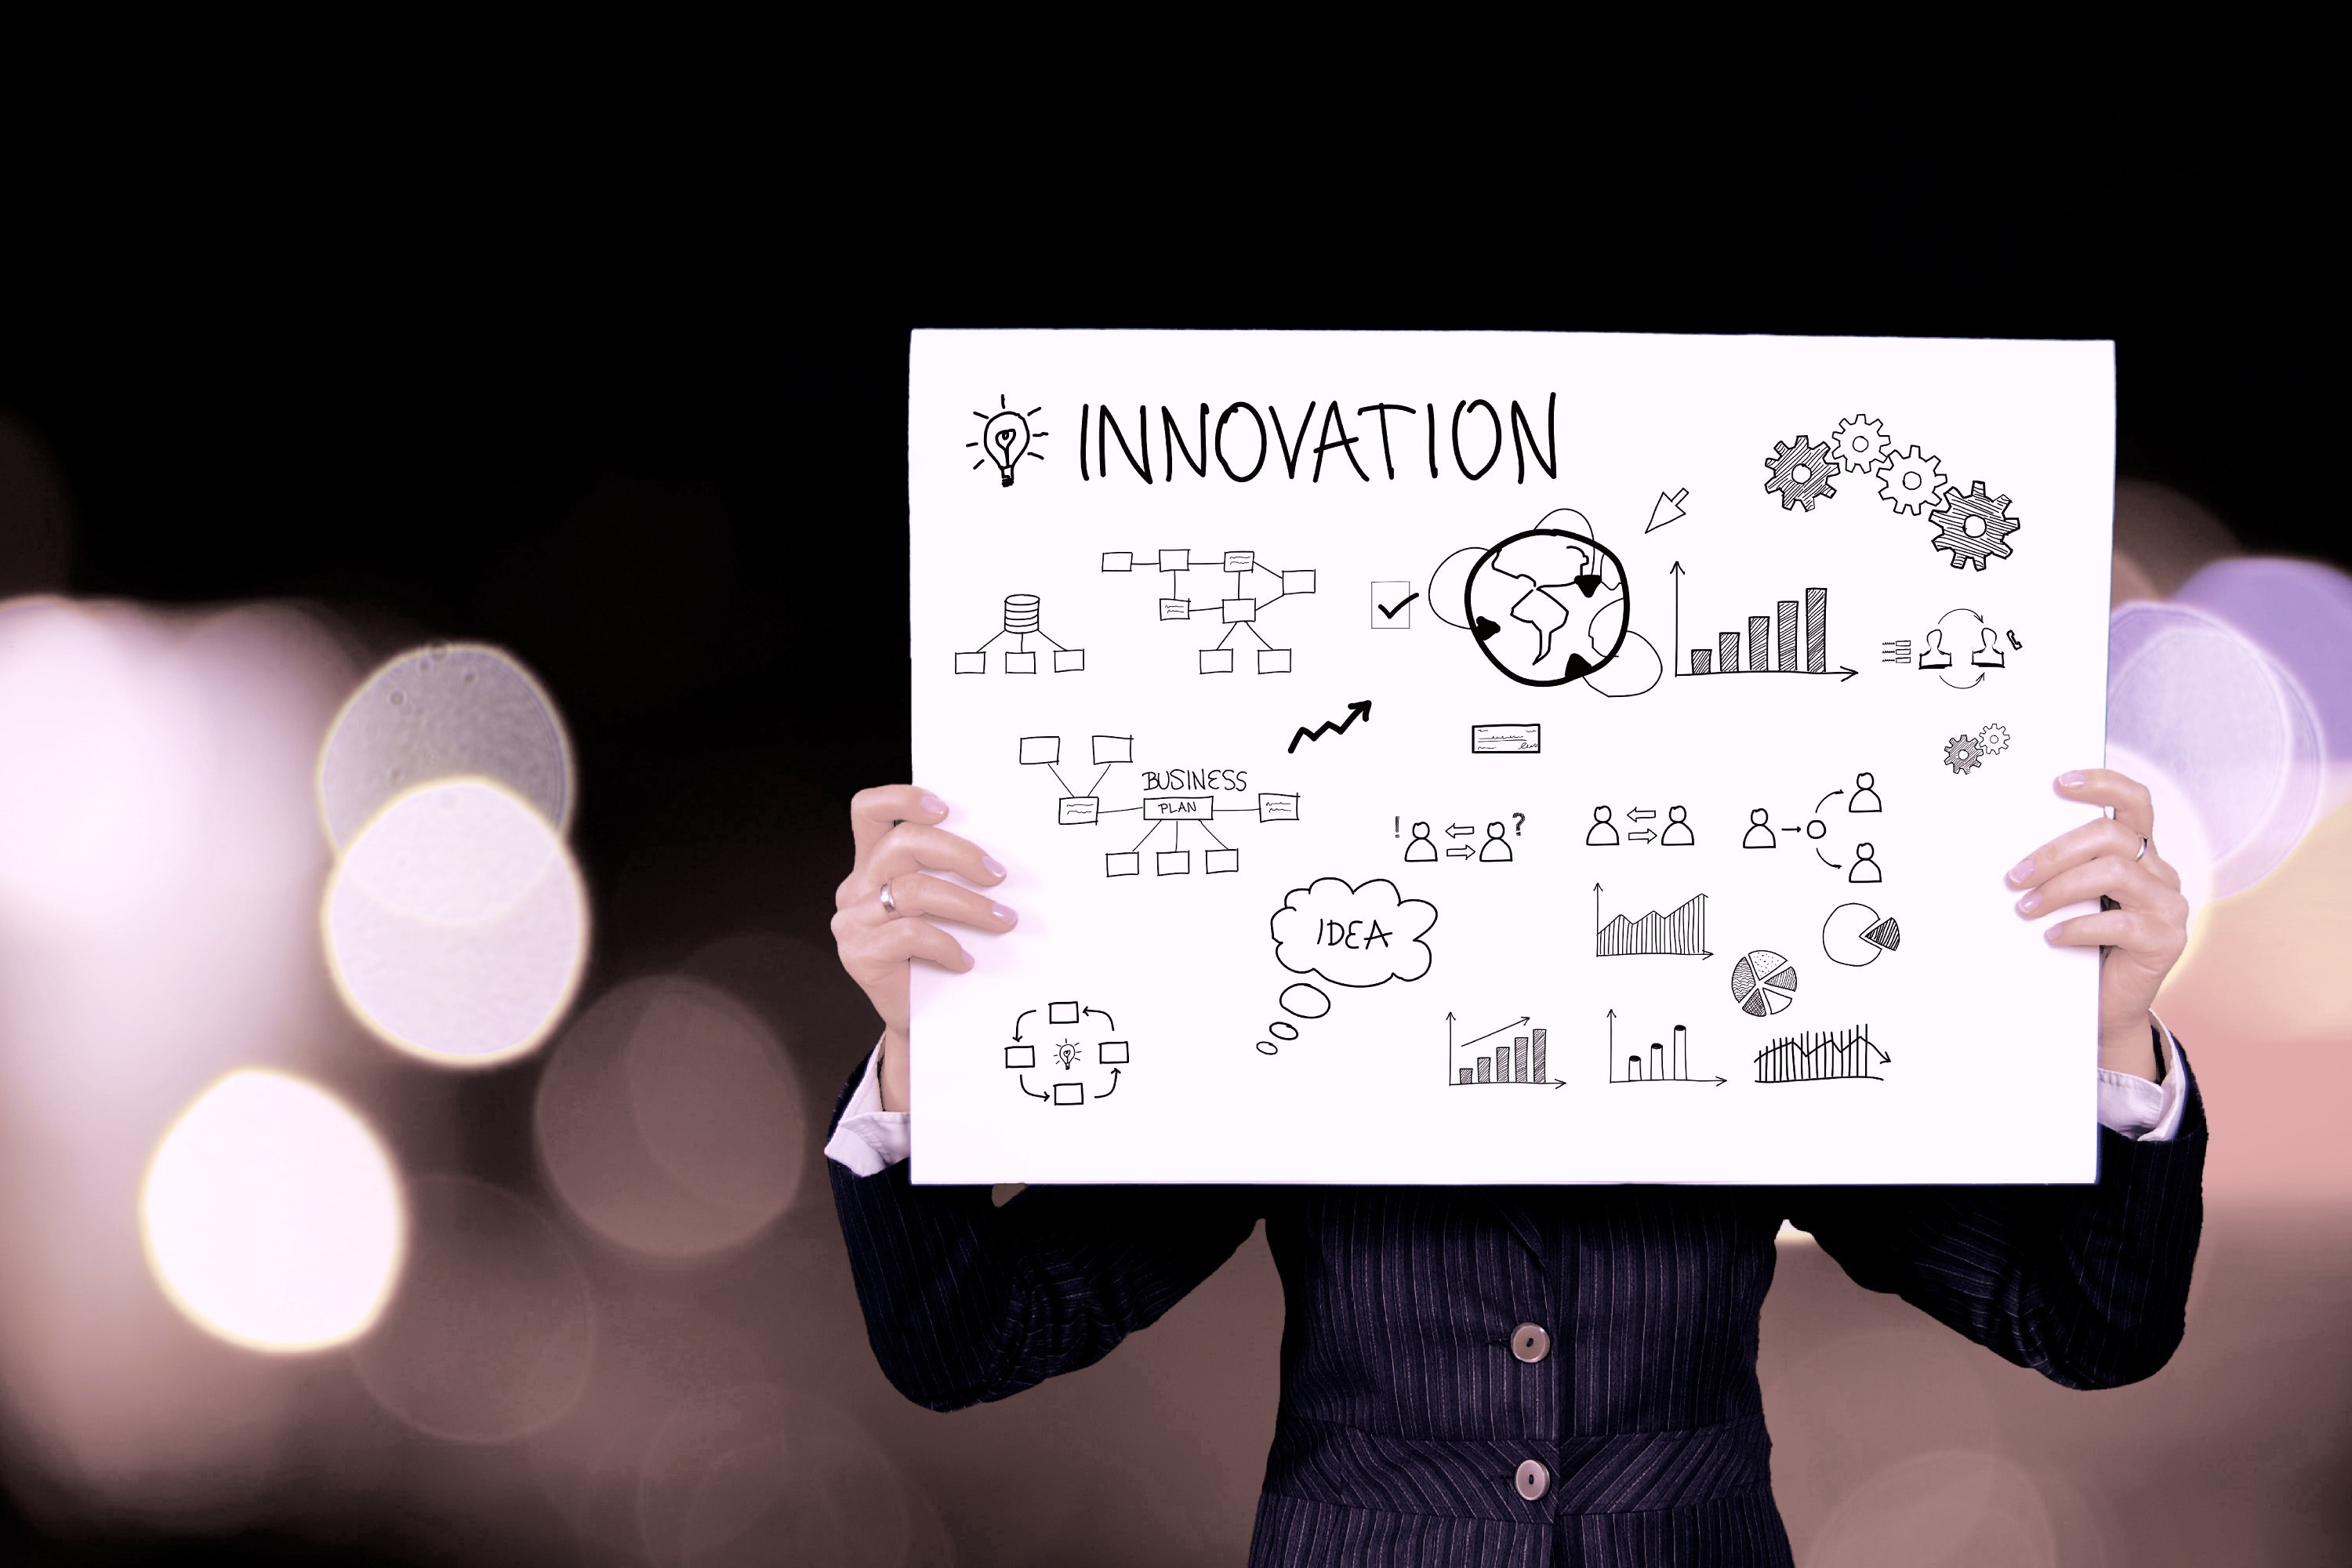 Small businesses need innovation